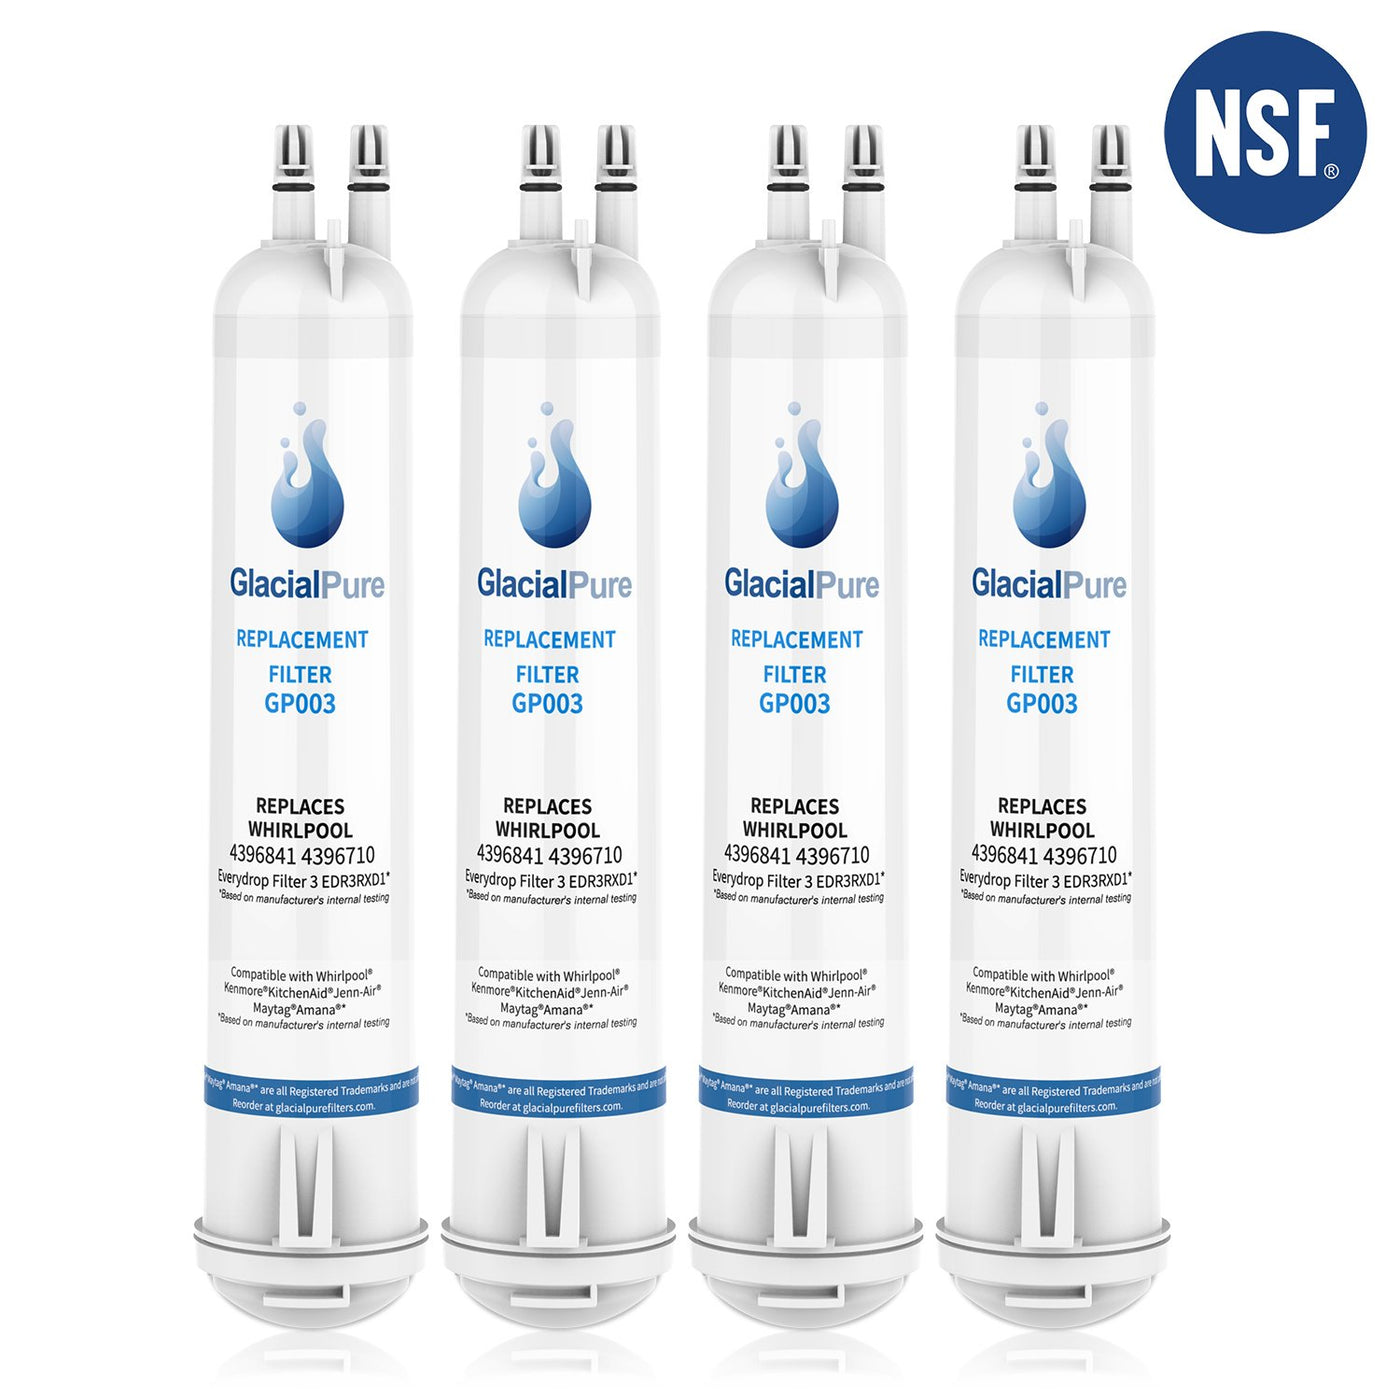 GlacialPure Refrigerator Water Filter for Whirlpool Filter 3 EDR3RXD1 4396710 4 Packs